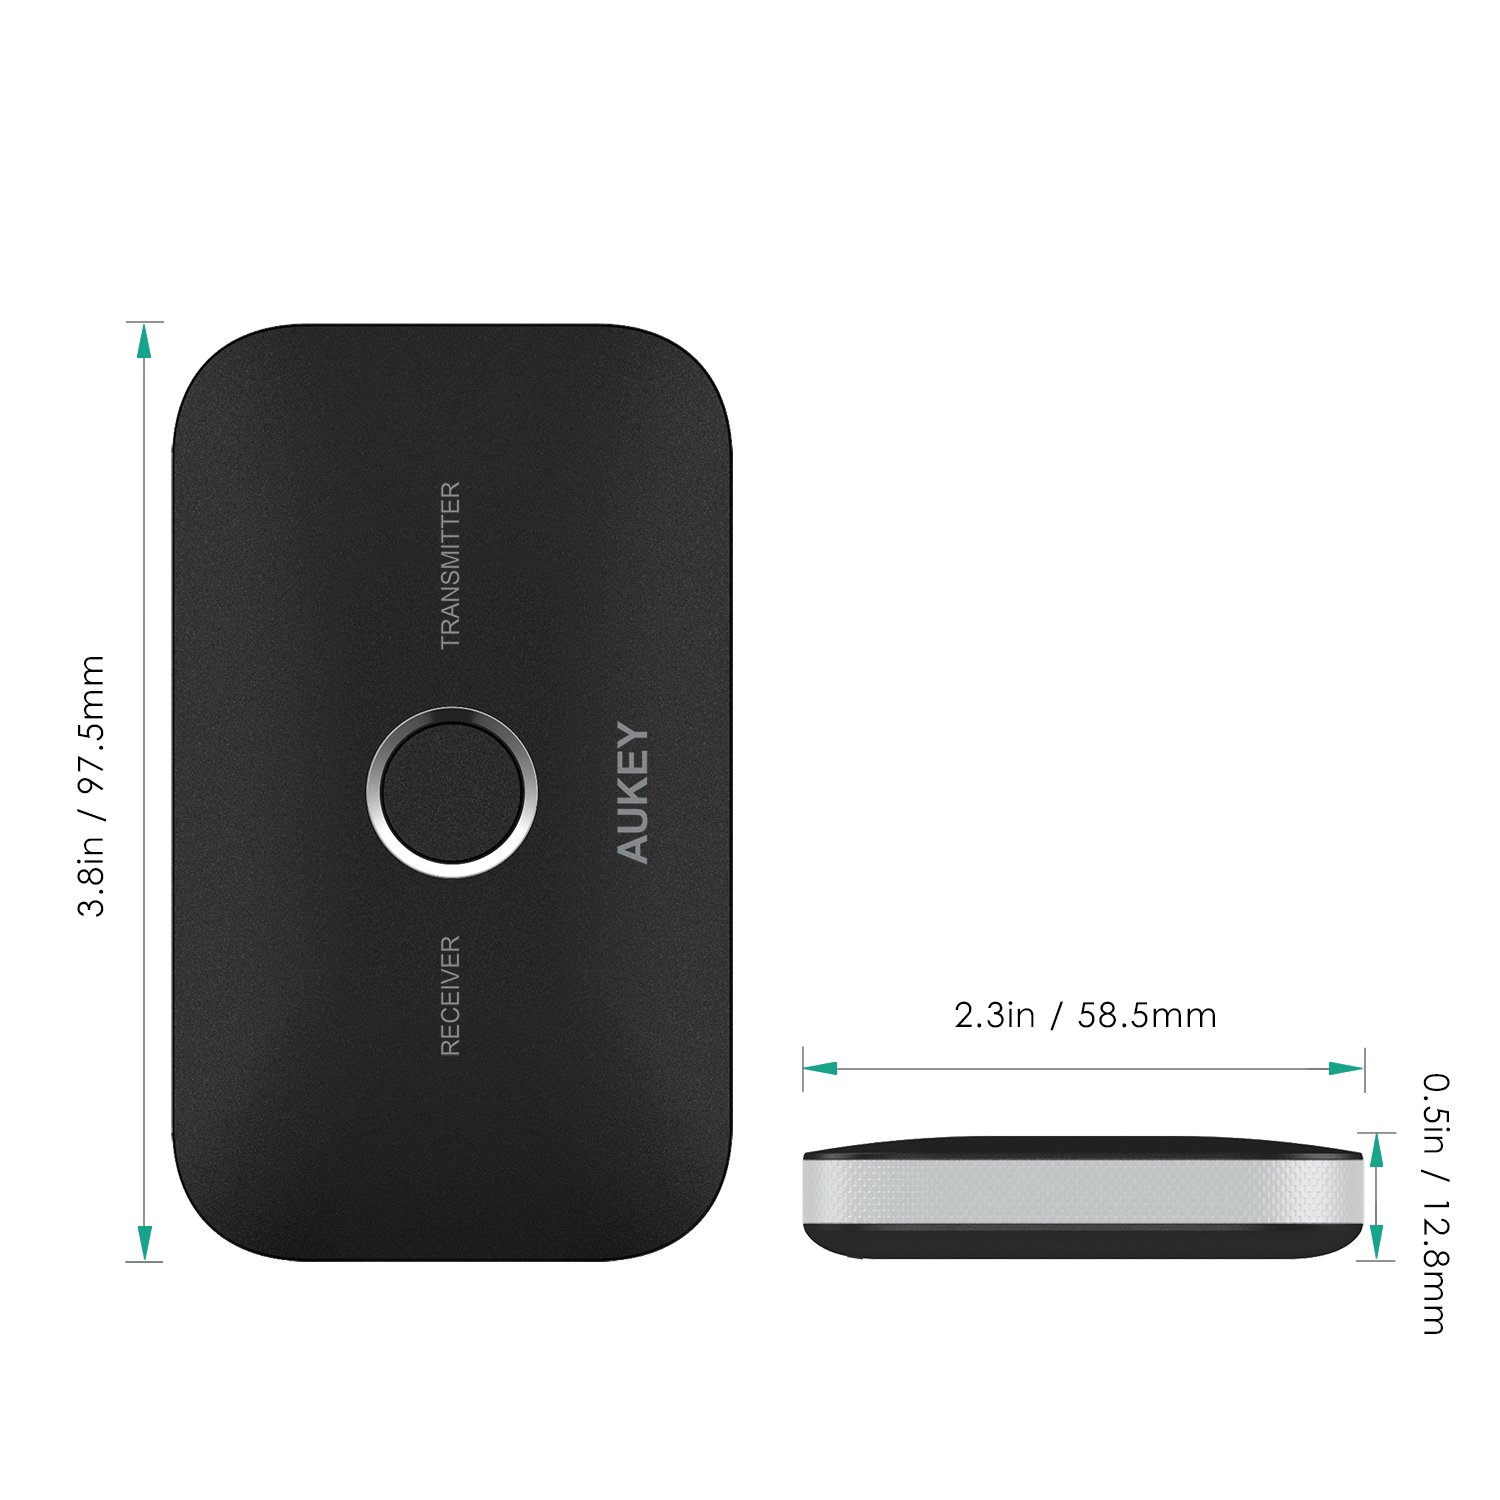 AUKEY br-c11 Adaptador Bluetooth 4.1, Color Negro: Amazon.es: Electrónica